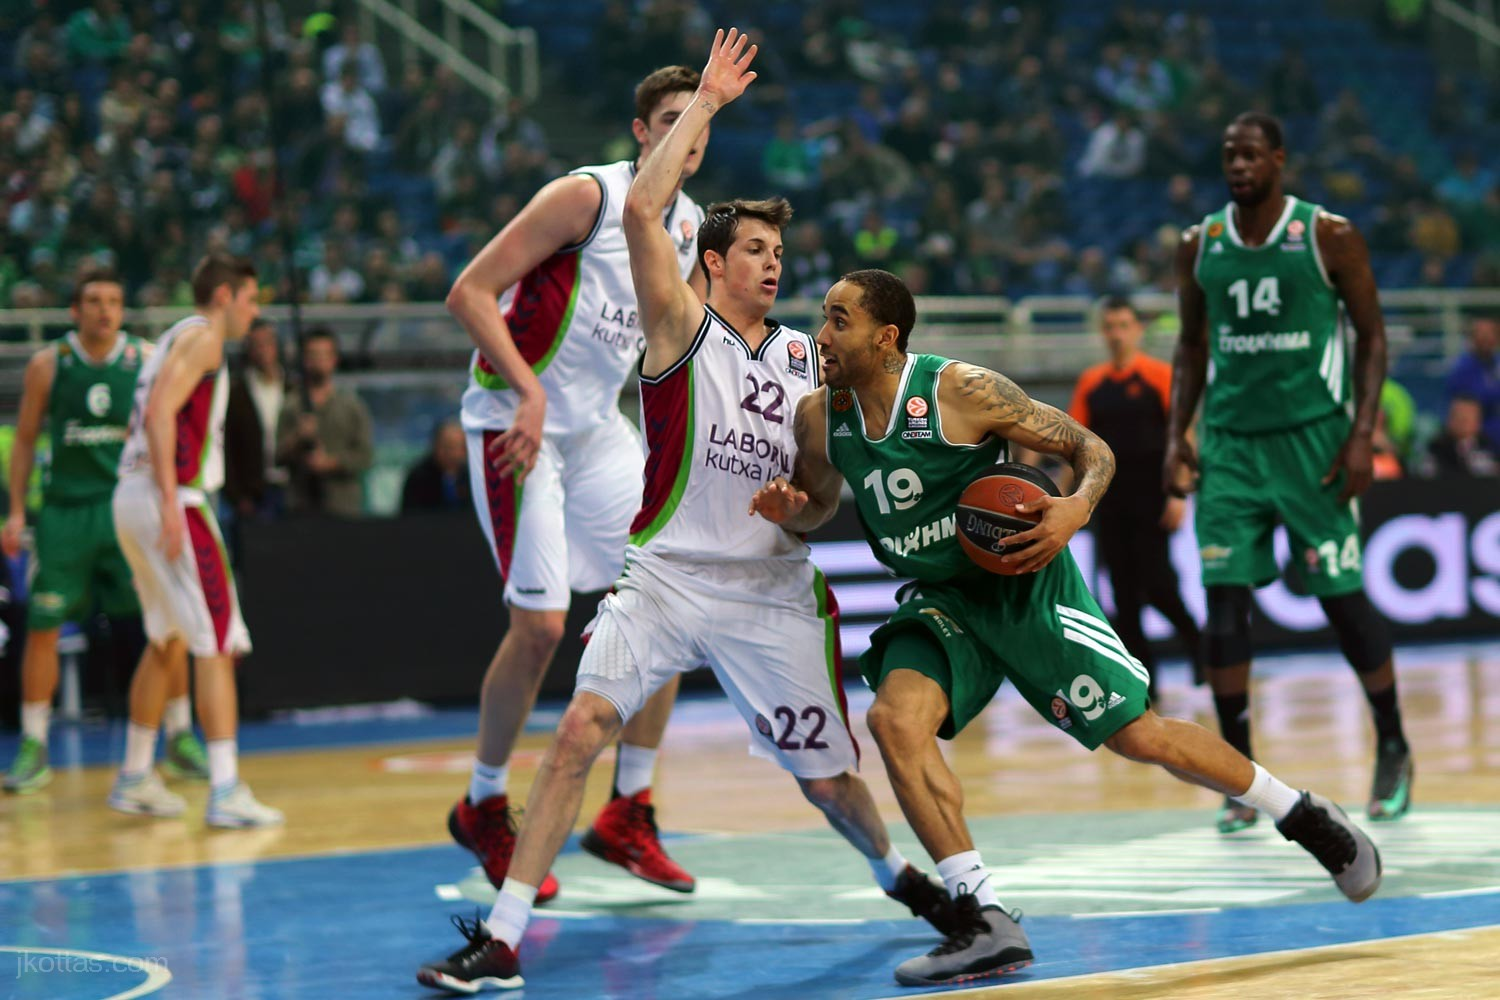 panathinaikos-laboral-17